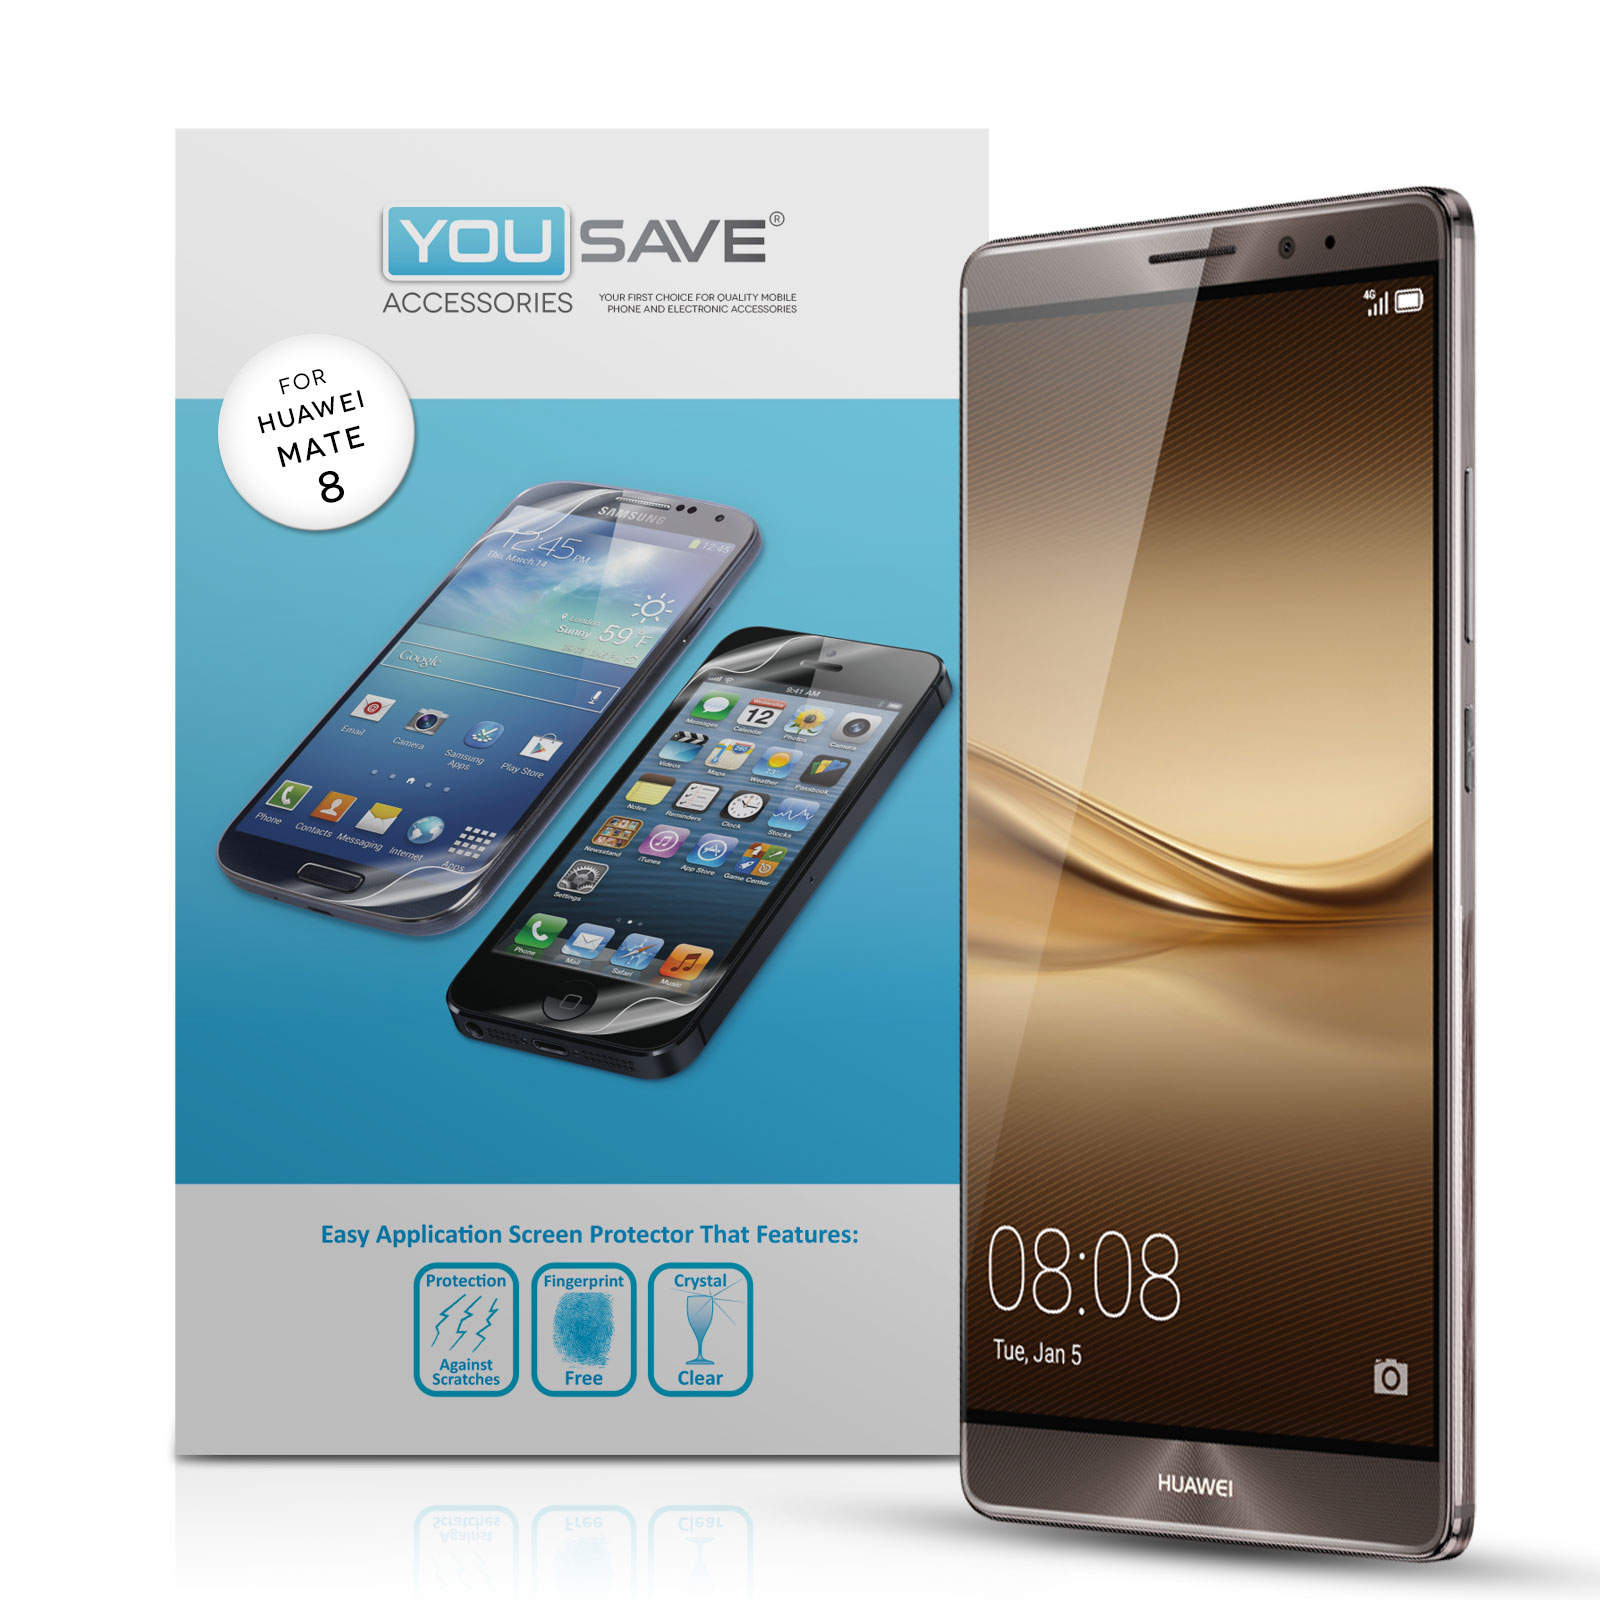 Yousave Accessories Huawei Mate 8 Screen Protectors x5